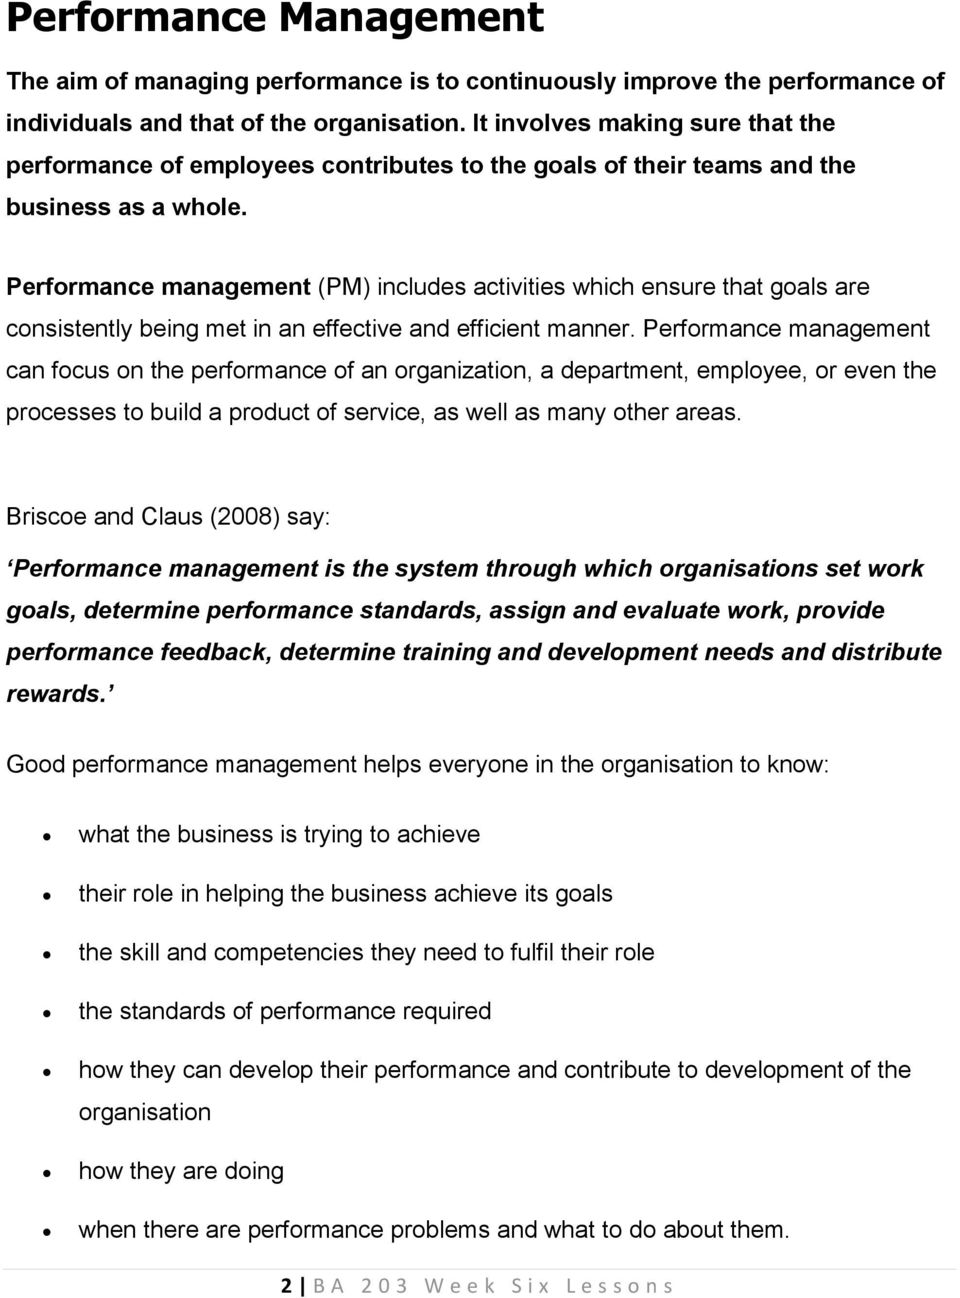 Performance management (PM) includes activities which ensure that goals are consistently being met in an effective and efficient manner.